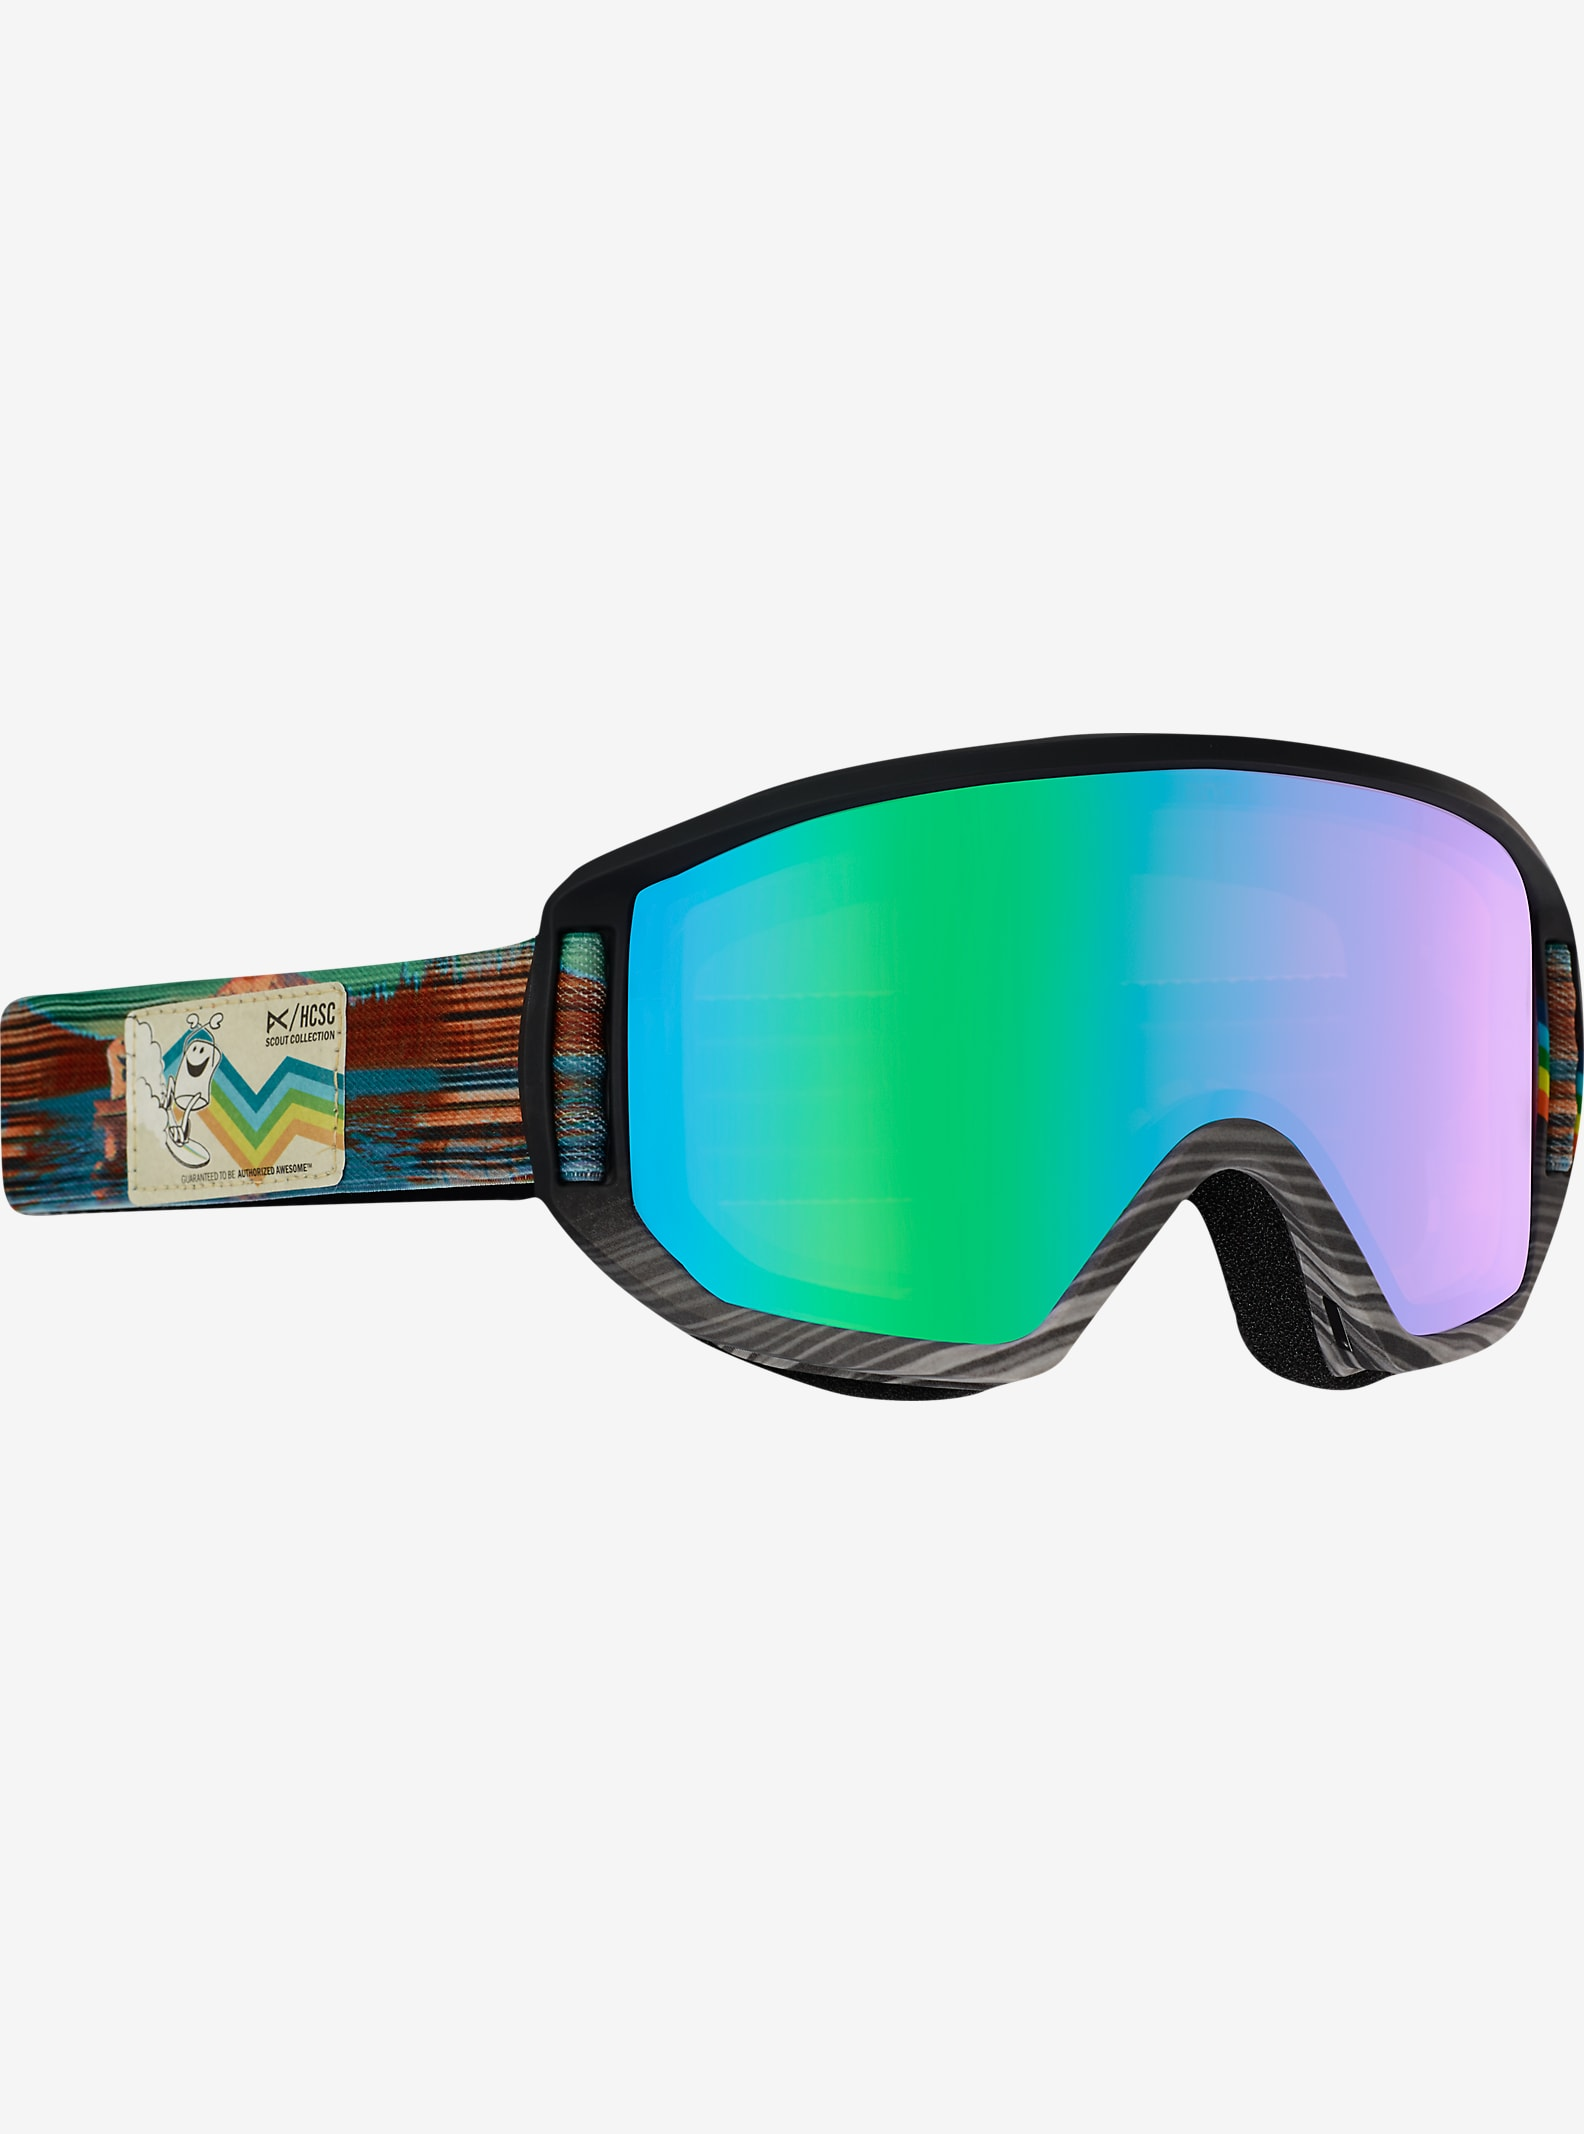 HCSC x anon. Relapse Jr. Goggle shown in Frame: HCSC, Lens: Green Solex